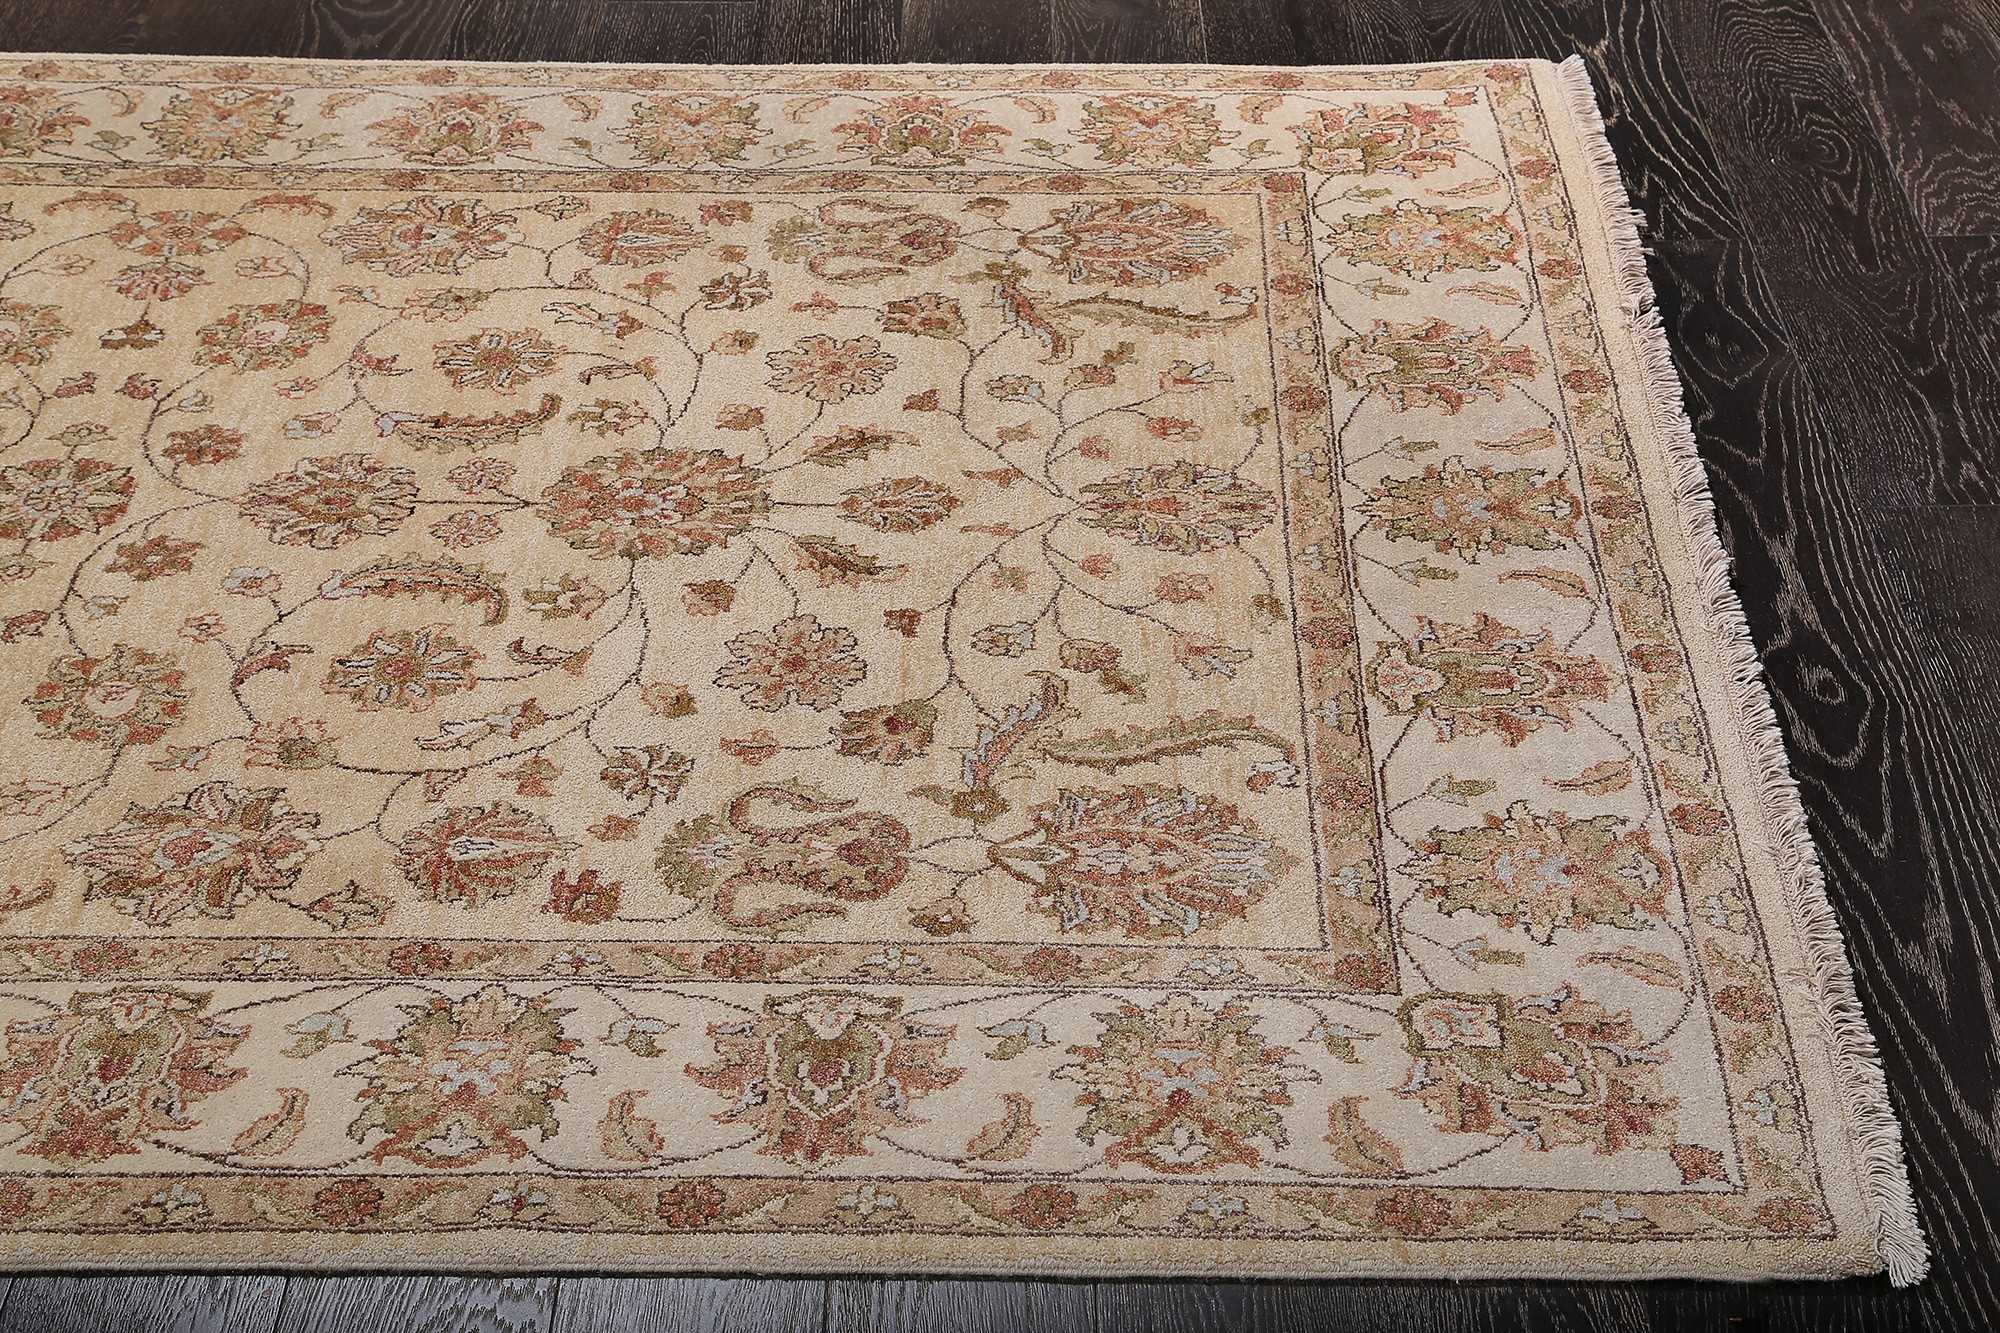 Hand Knotted Wool Rug Roselawnlutheran Pertaining To Persian Style Wool Rugs (Image 5 of 15)